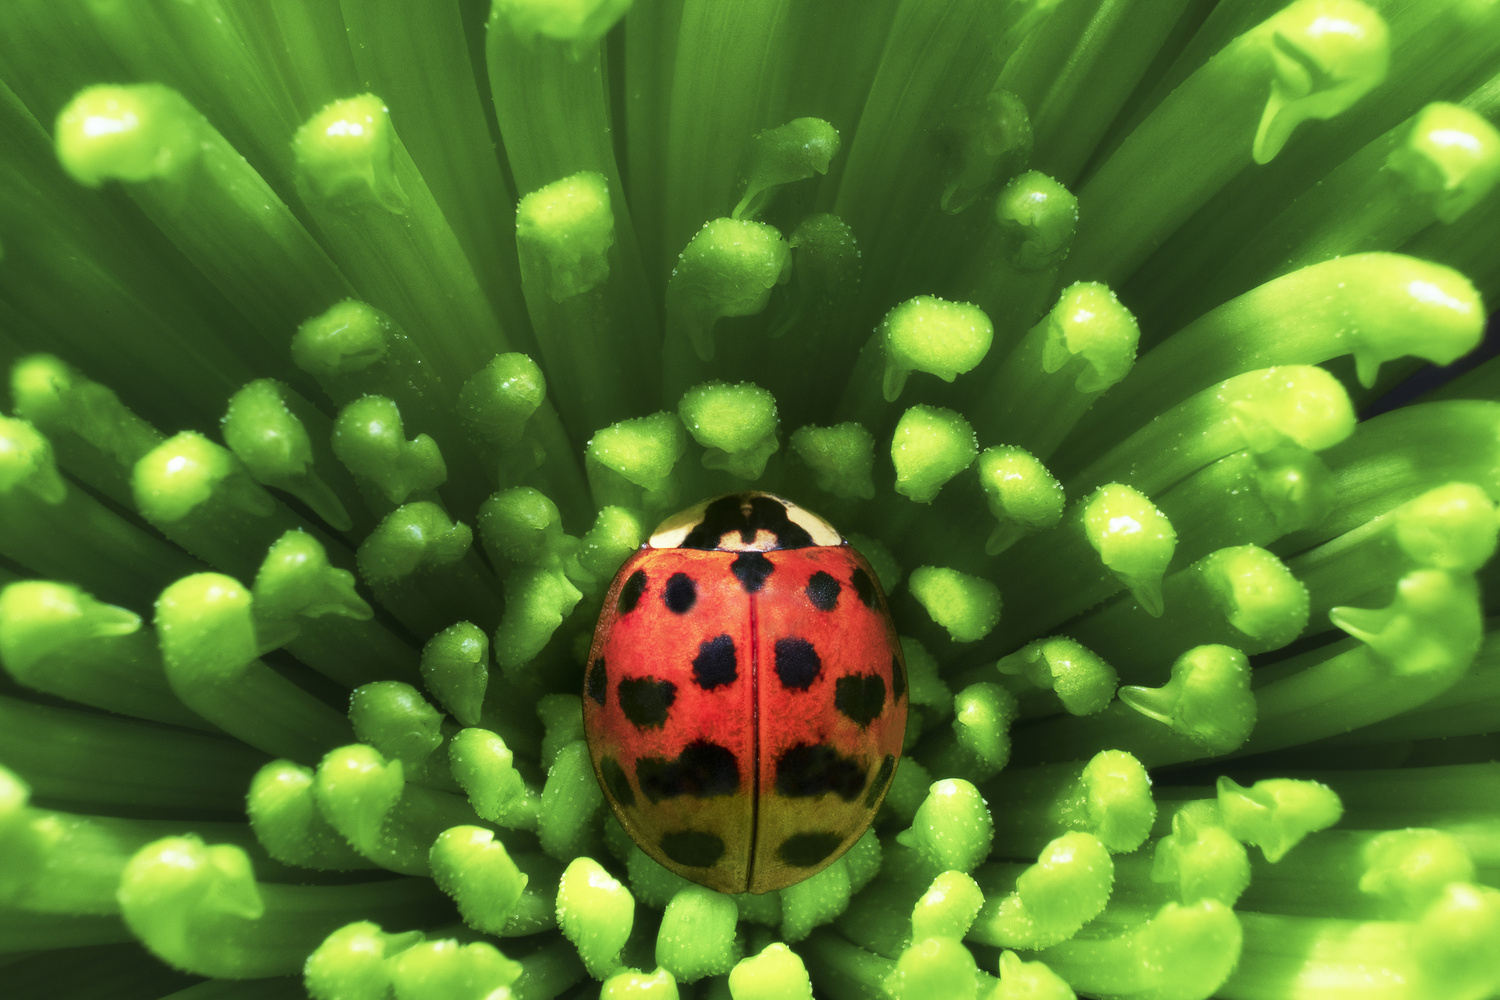 Ladybug by Stephen Clough